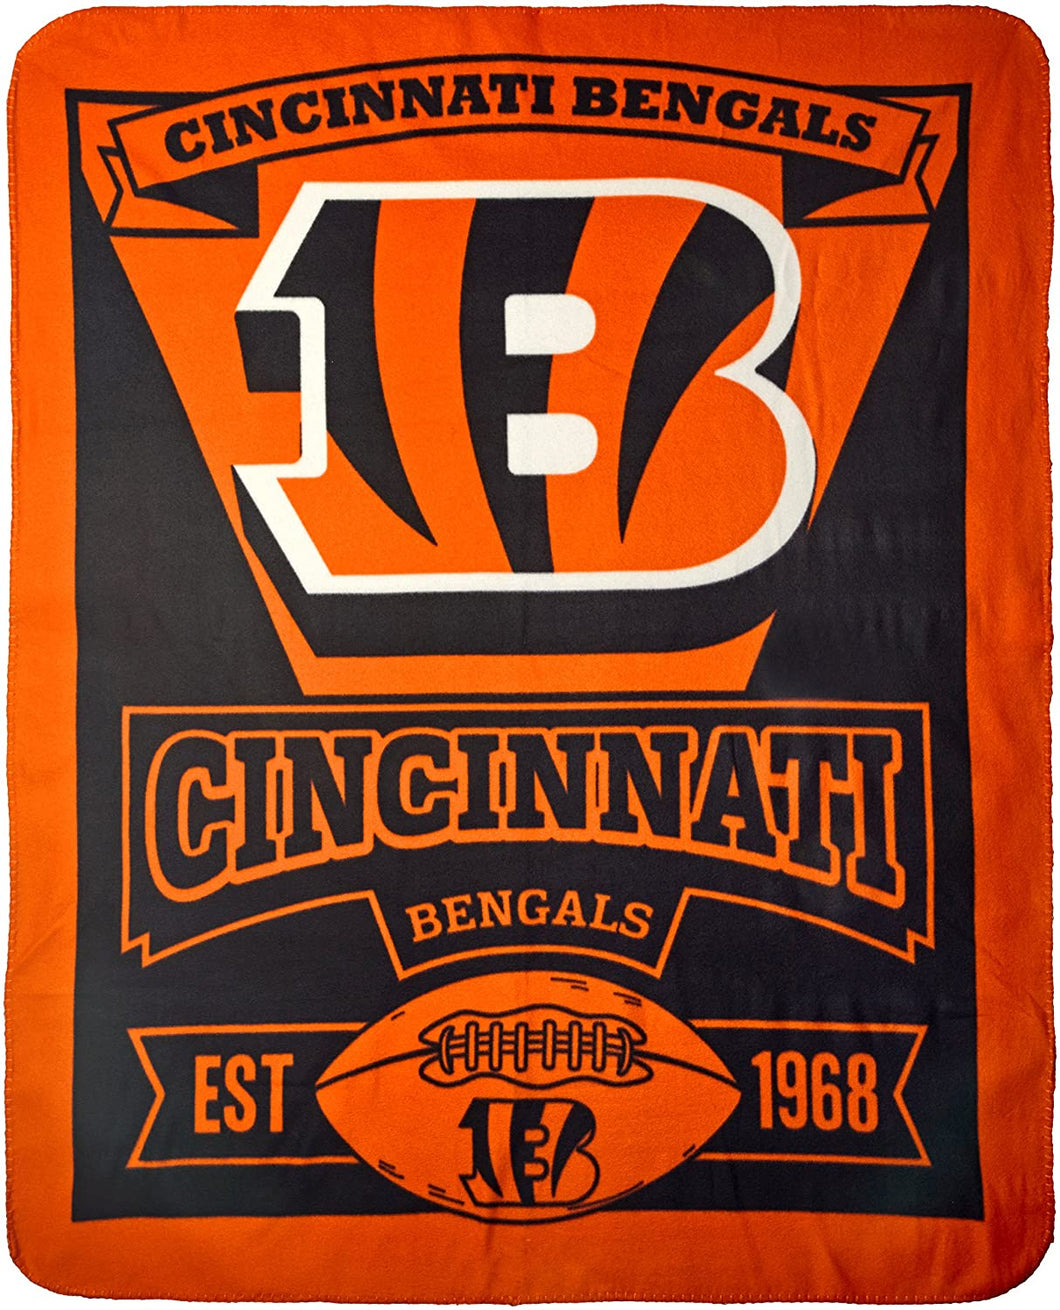 NFL Cincinnati Bengals Marque Printed Fleece Throw, 50-inch by 60-inch